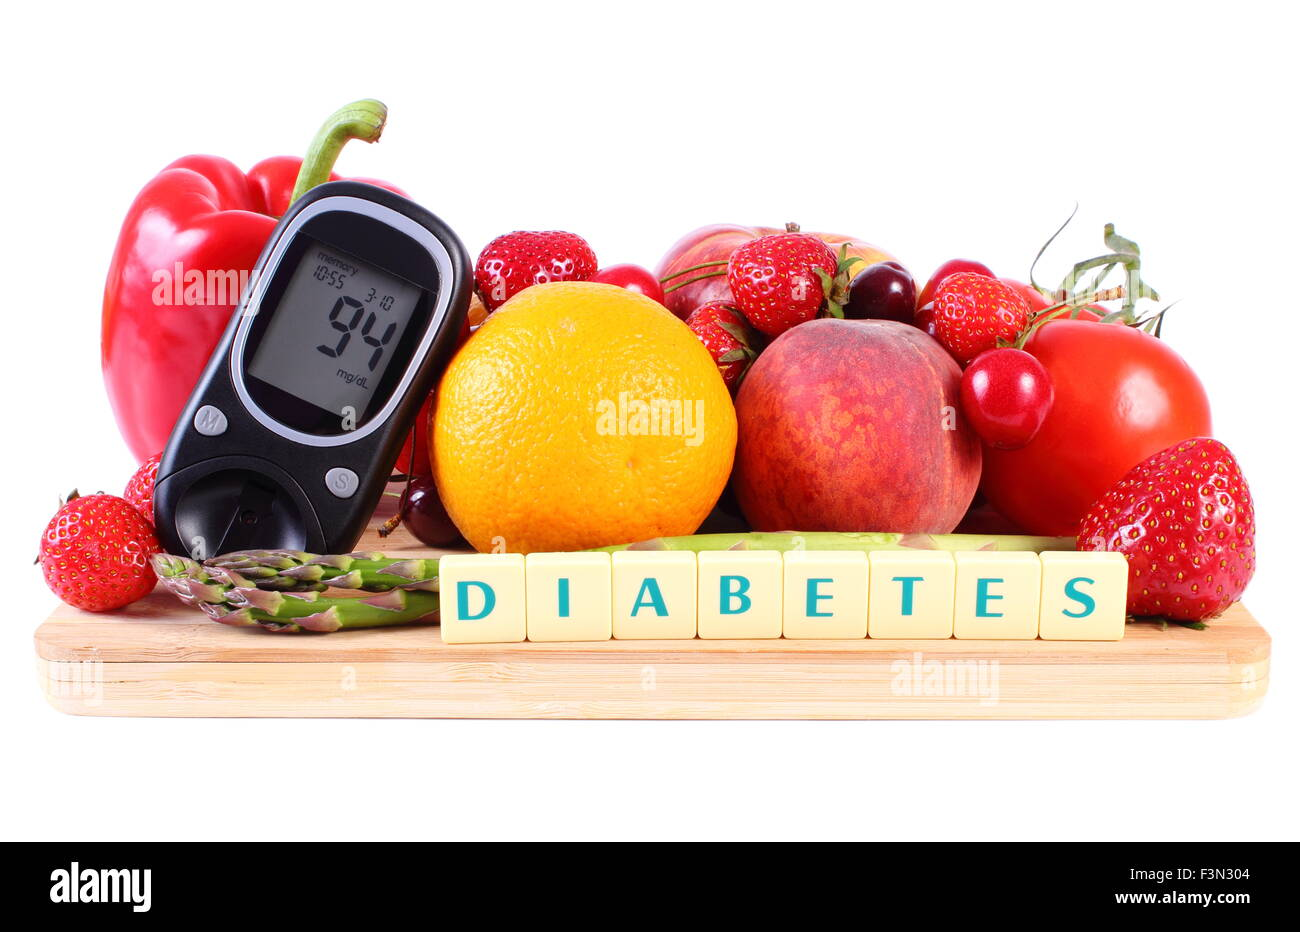 Glucometer with fresh ripe fruits and vegetables on wooden cutting board, concept of diabetes, healthy food, nutrition - Stock Image